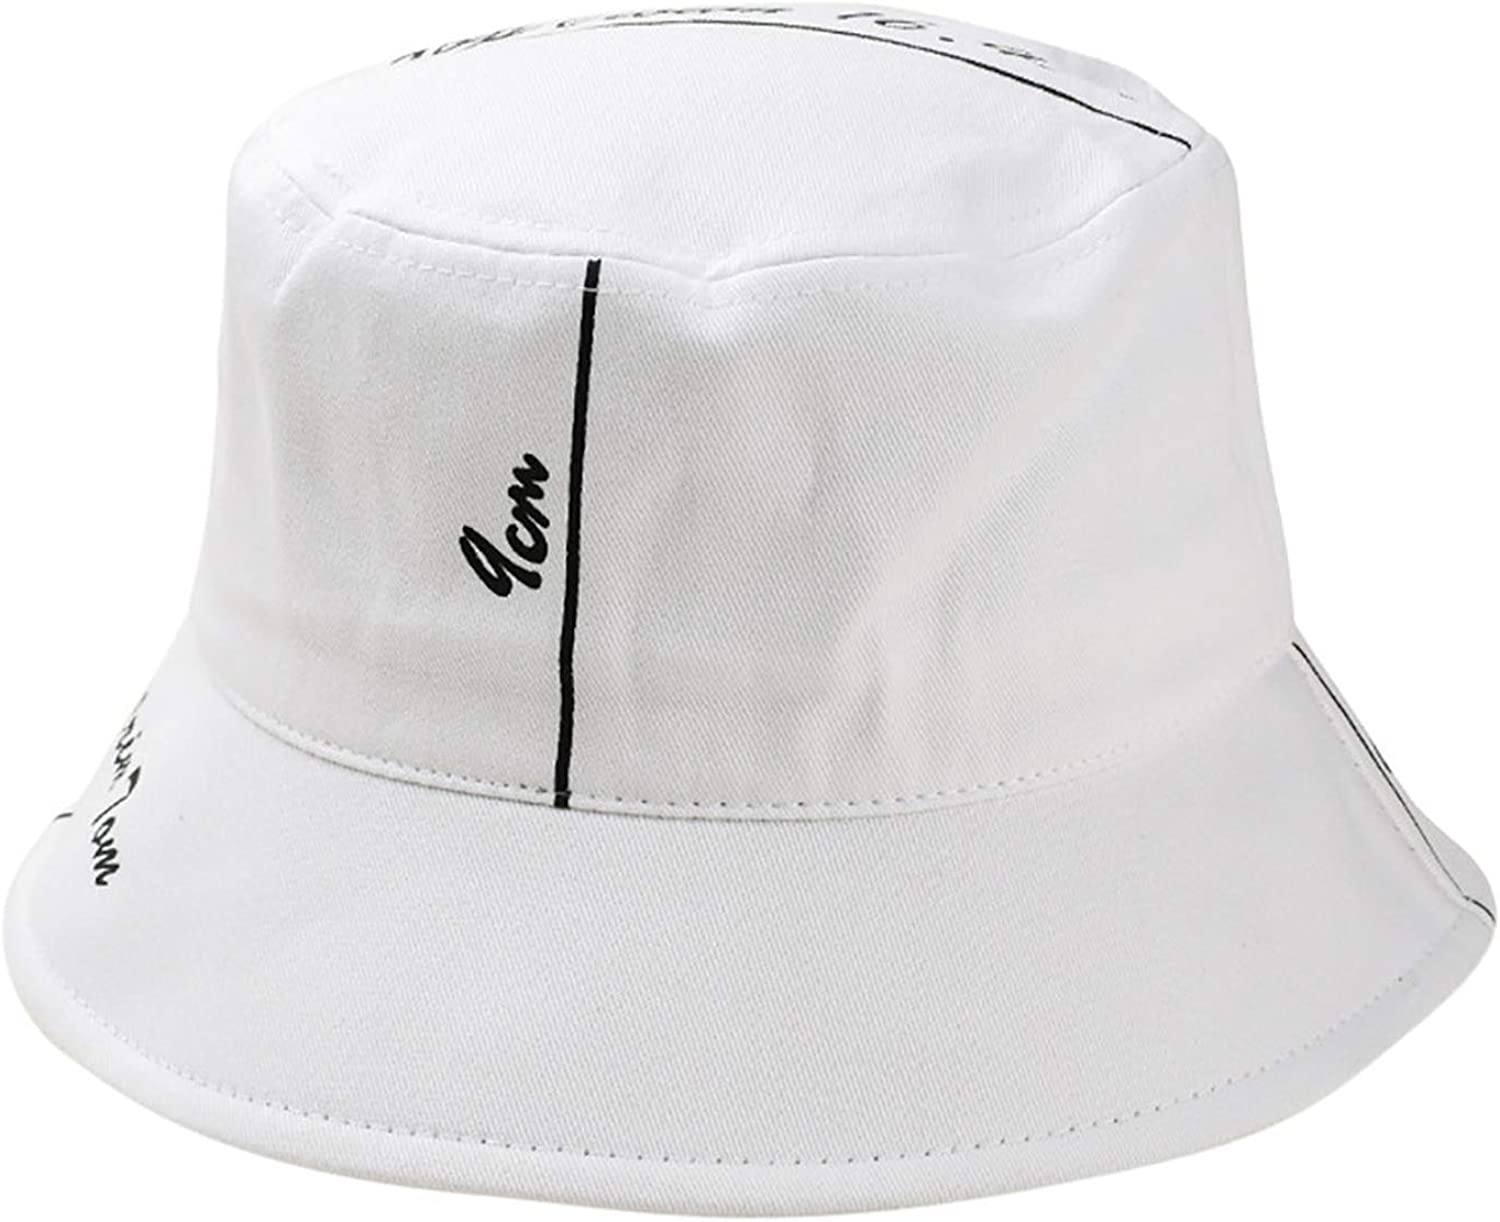 Outdoor Fisherman Hat Unisex Printing Letter Hat Fashion Wild Sun Protection Cap Bucket Hat